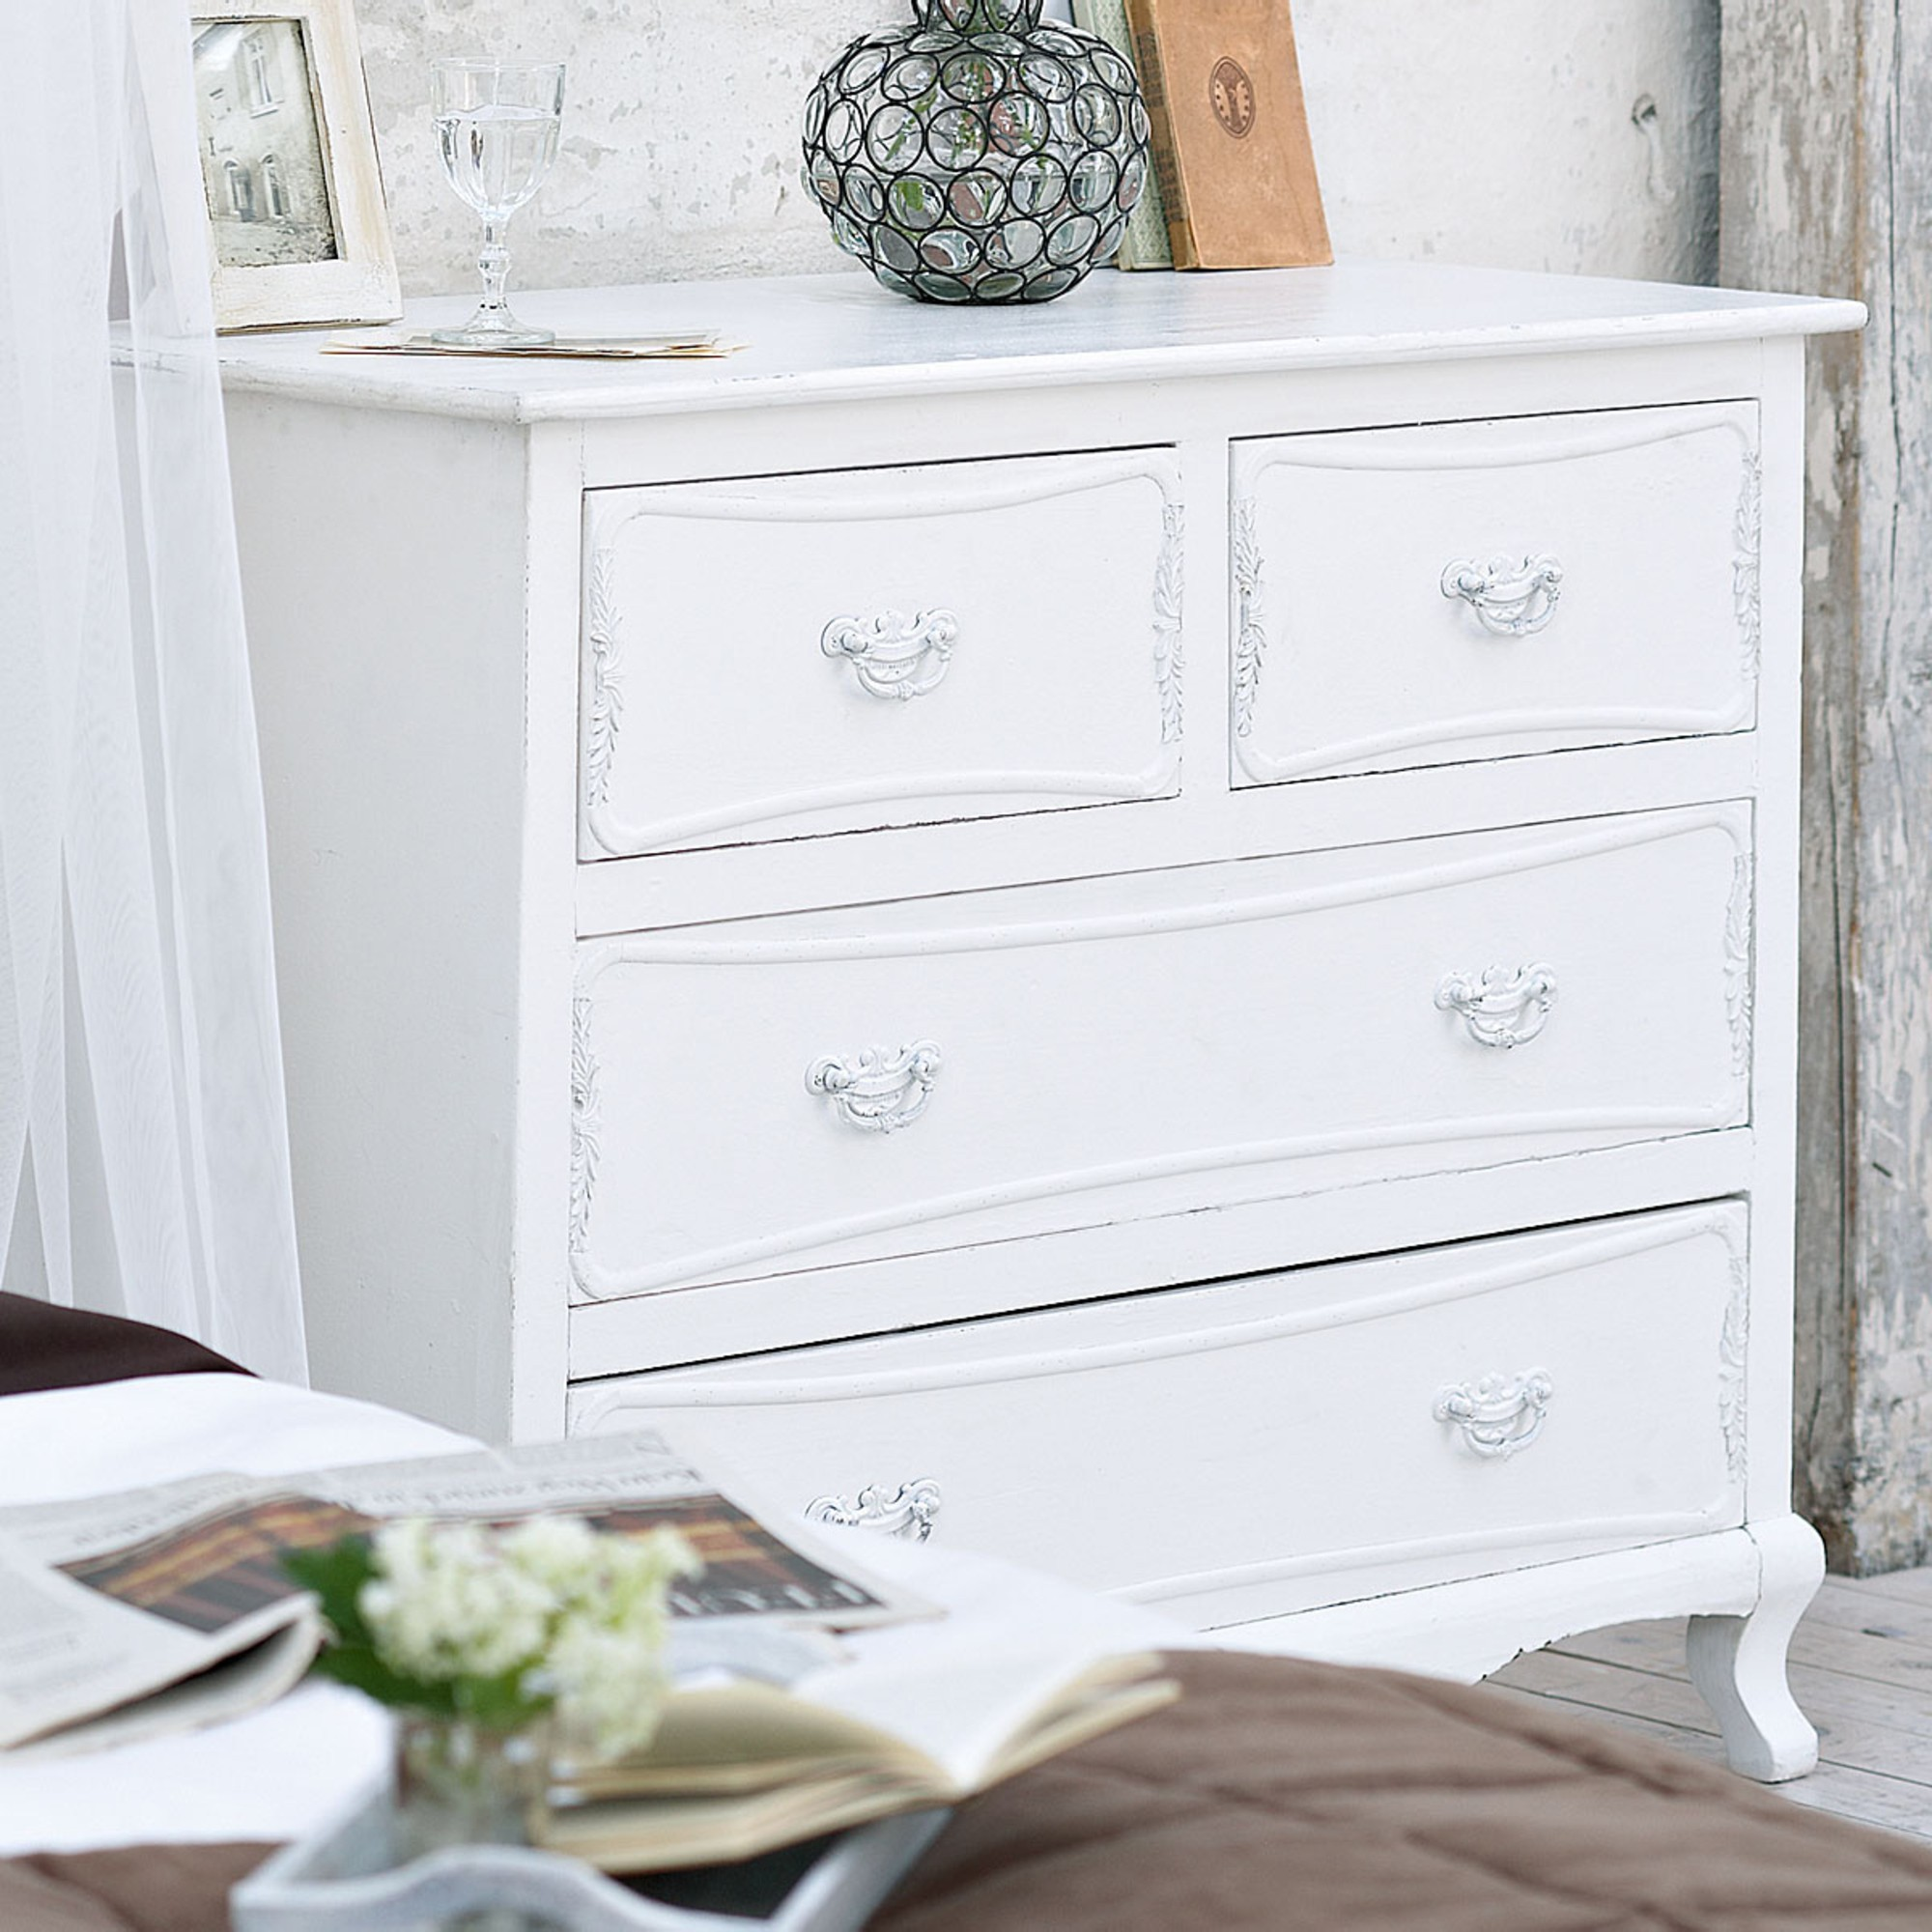 antike kommode im shabby chic ideen top. Black Bedroom Furniture Sets. Home Design Ideas